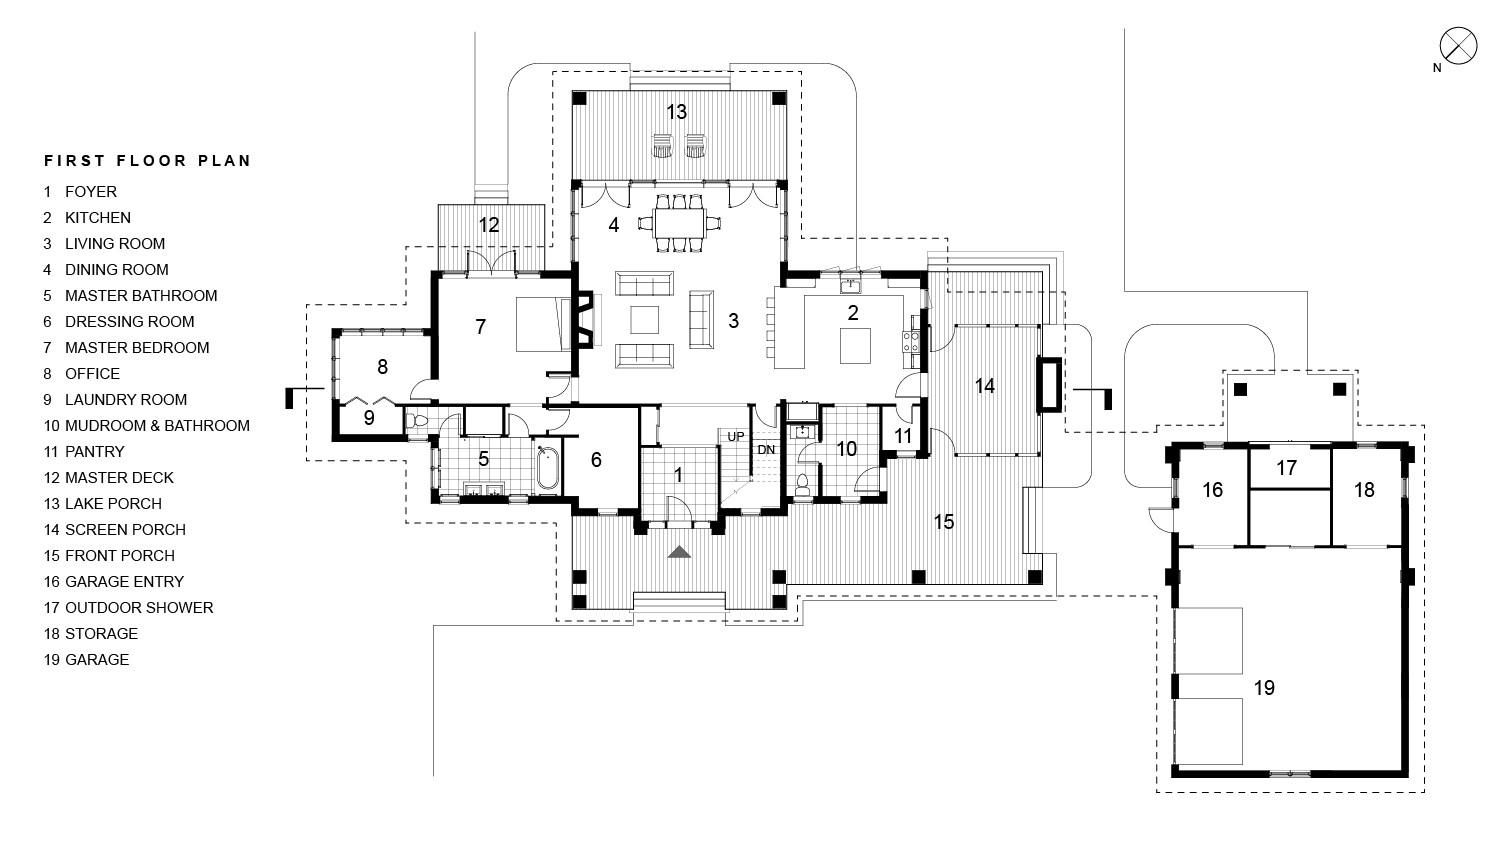 ames-first-floor-plan